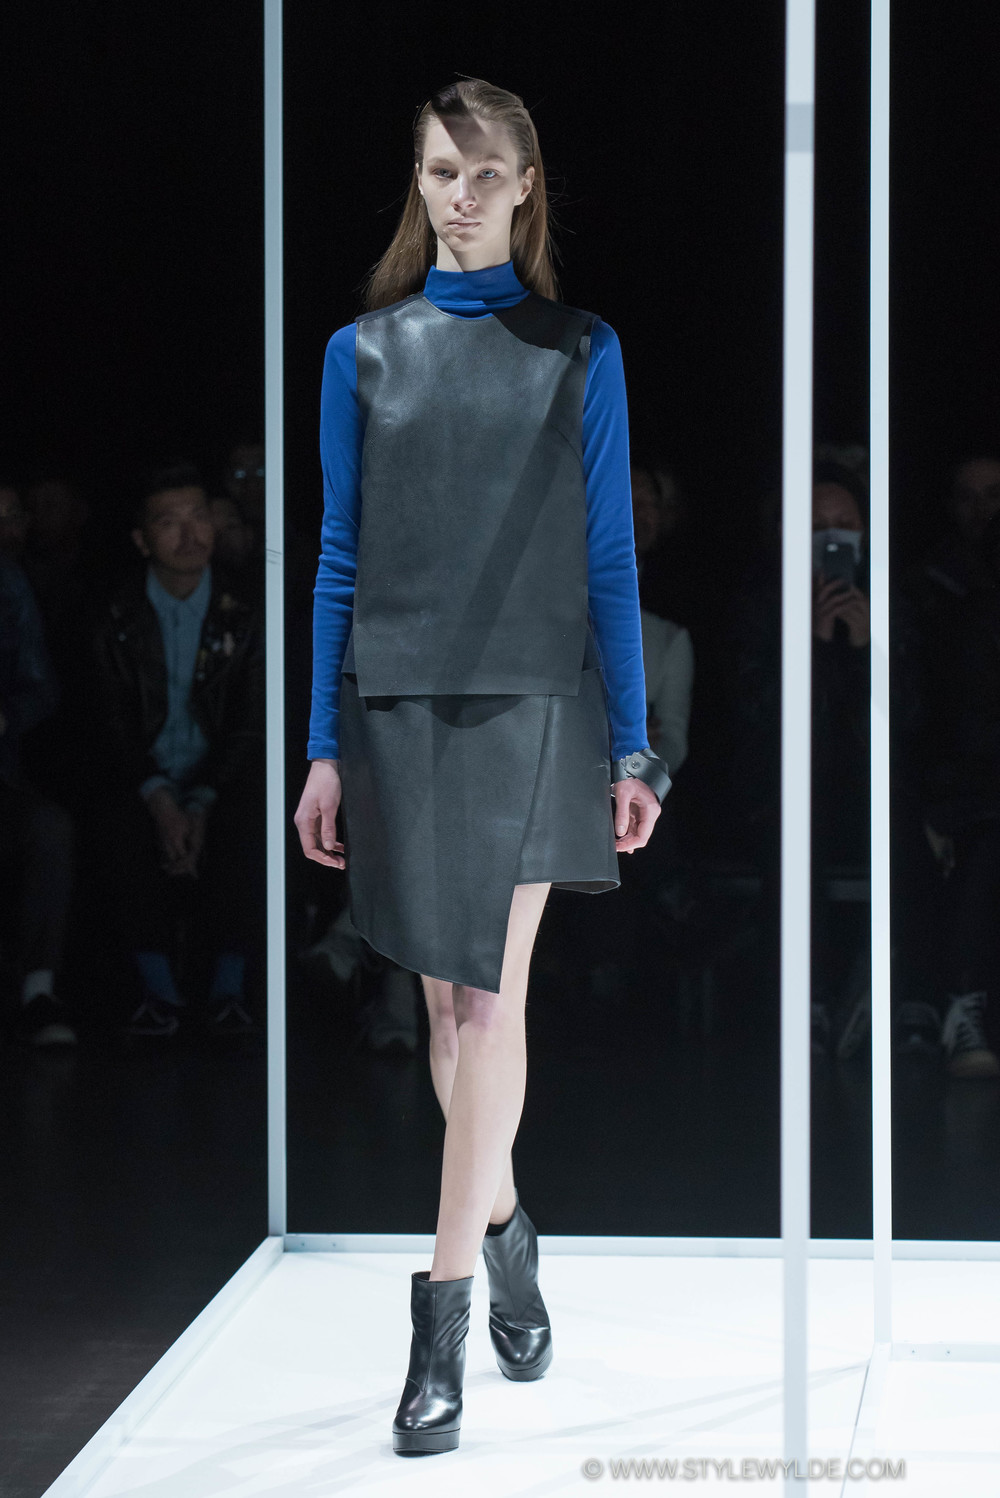 stylewyde_JLS_AW15_COLORCORRECT-1.jpg